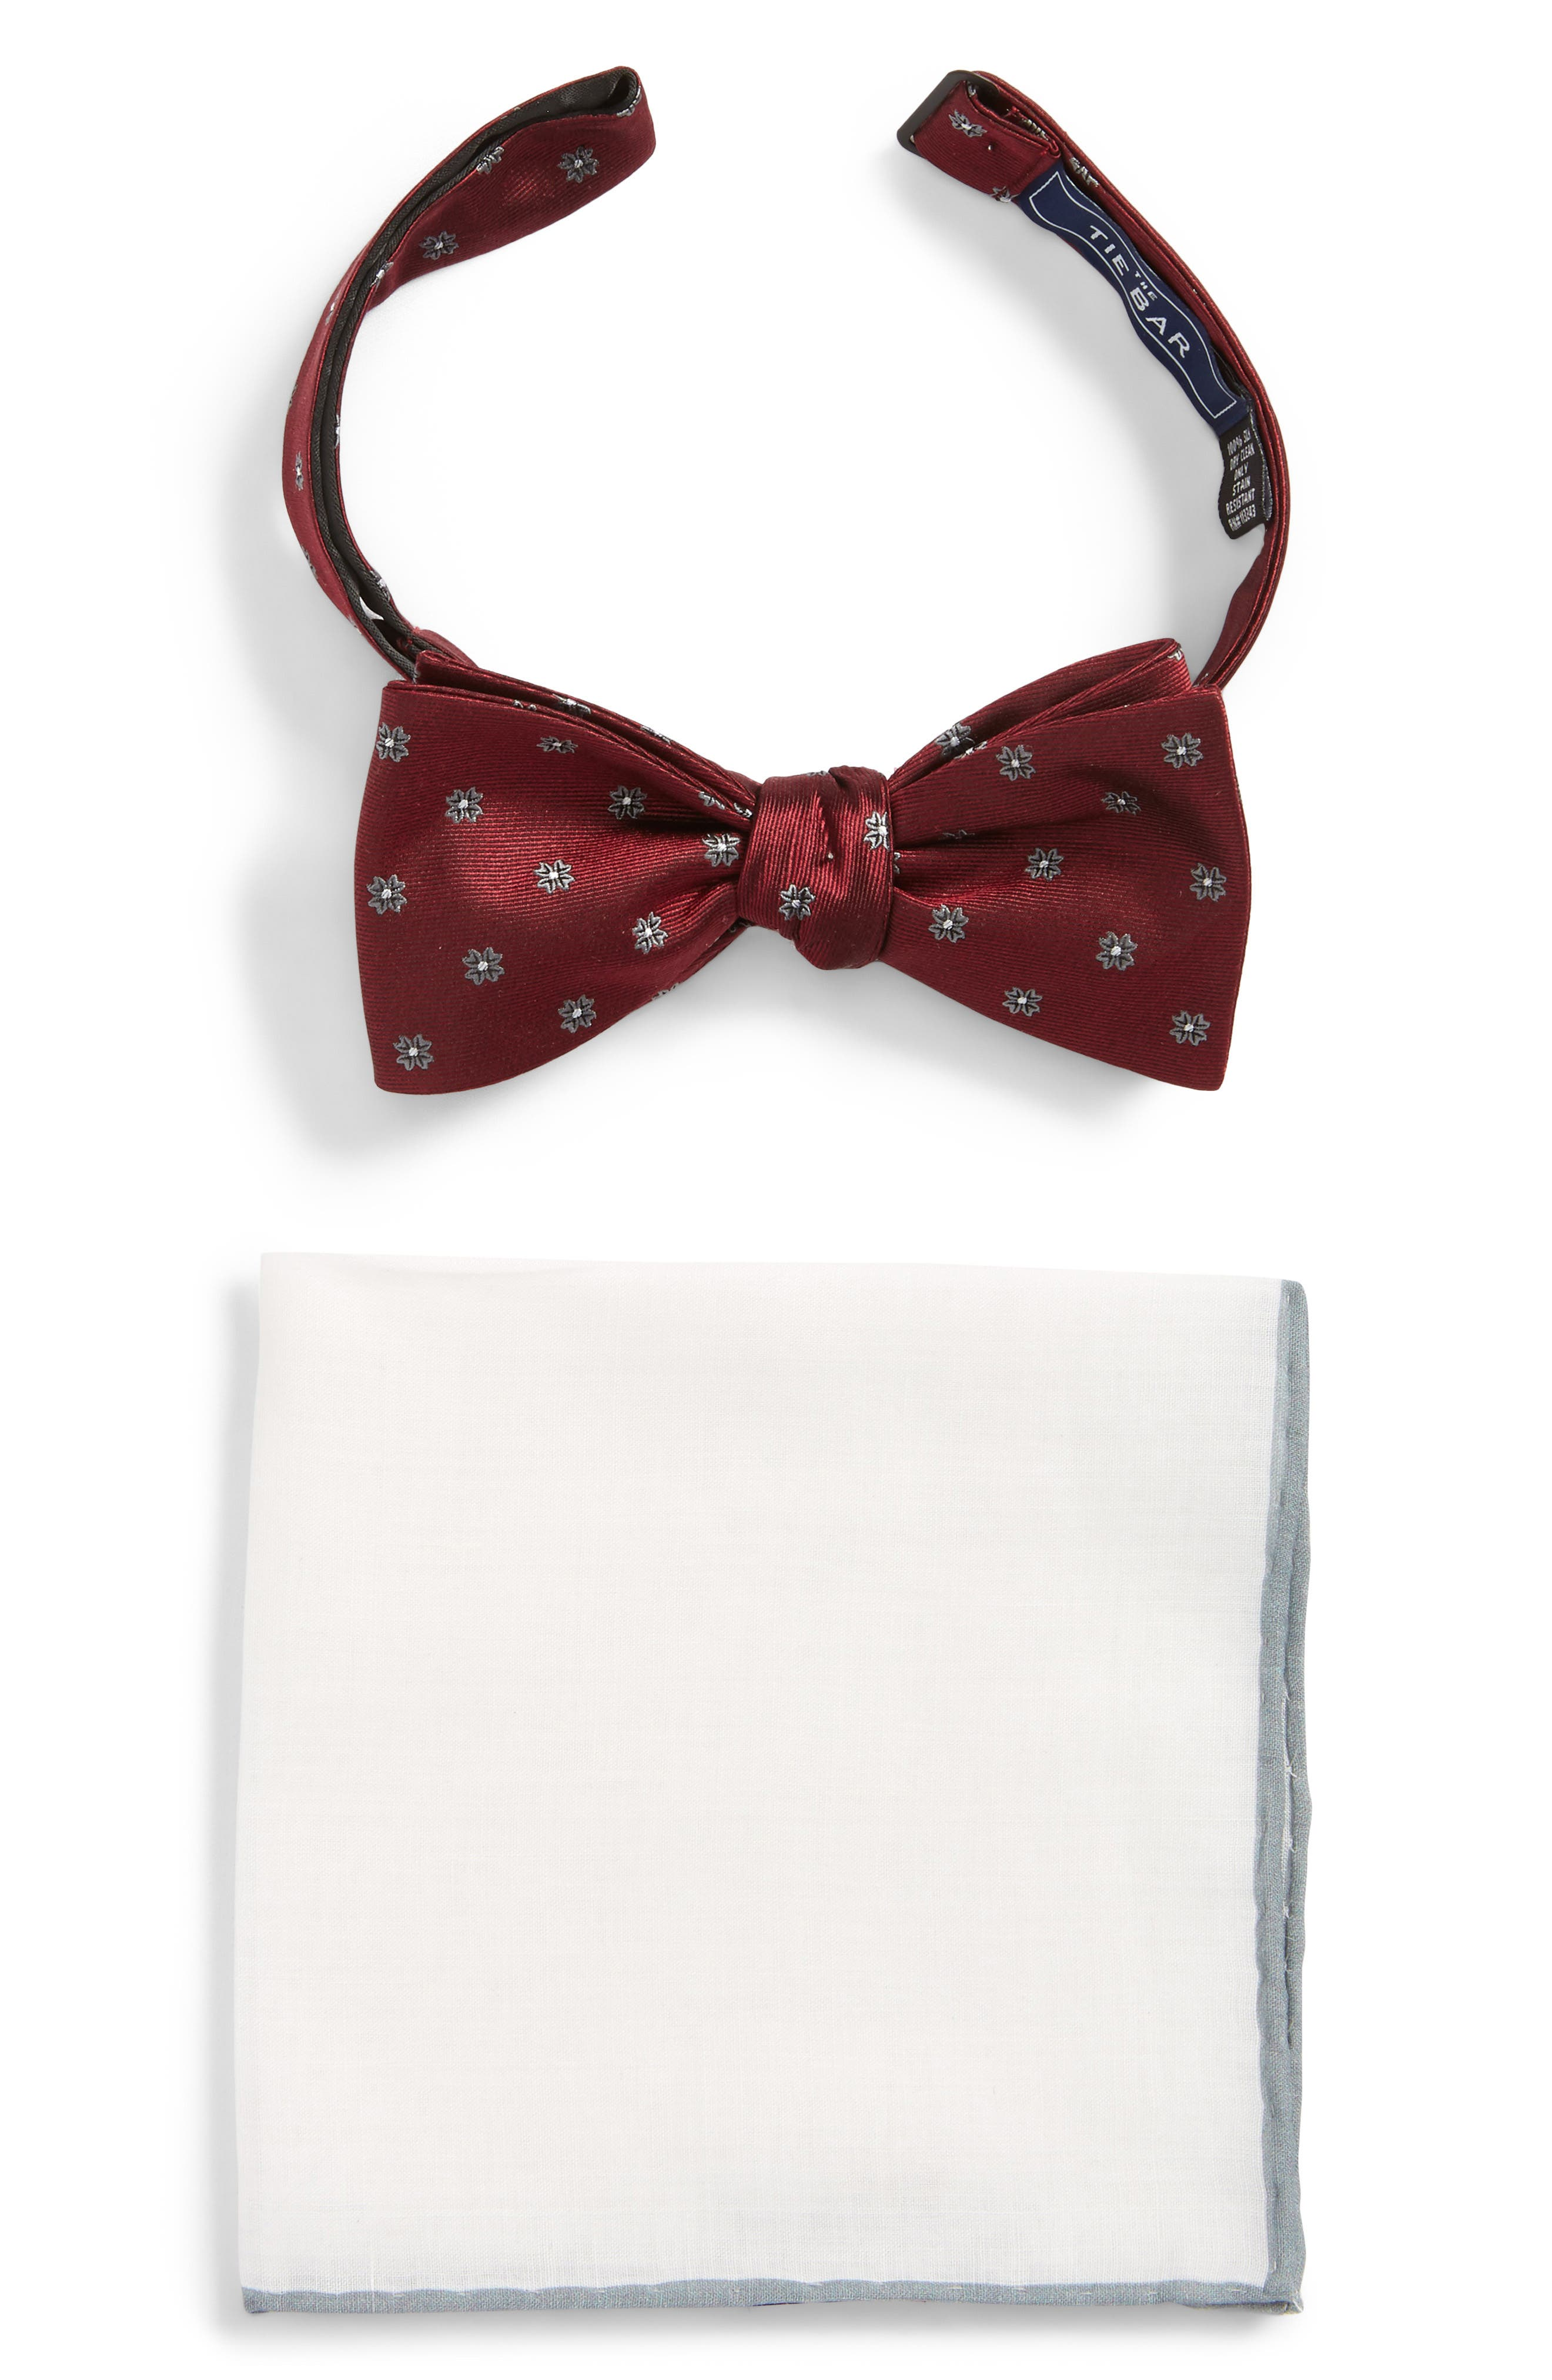 Bow Tie & Pocket Square Box Set,                         Main,                         color,